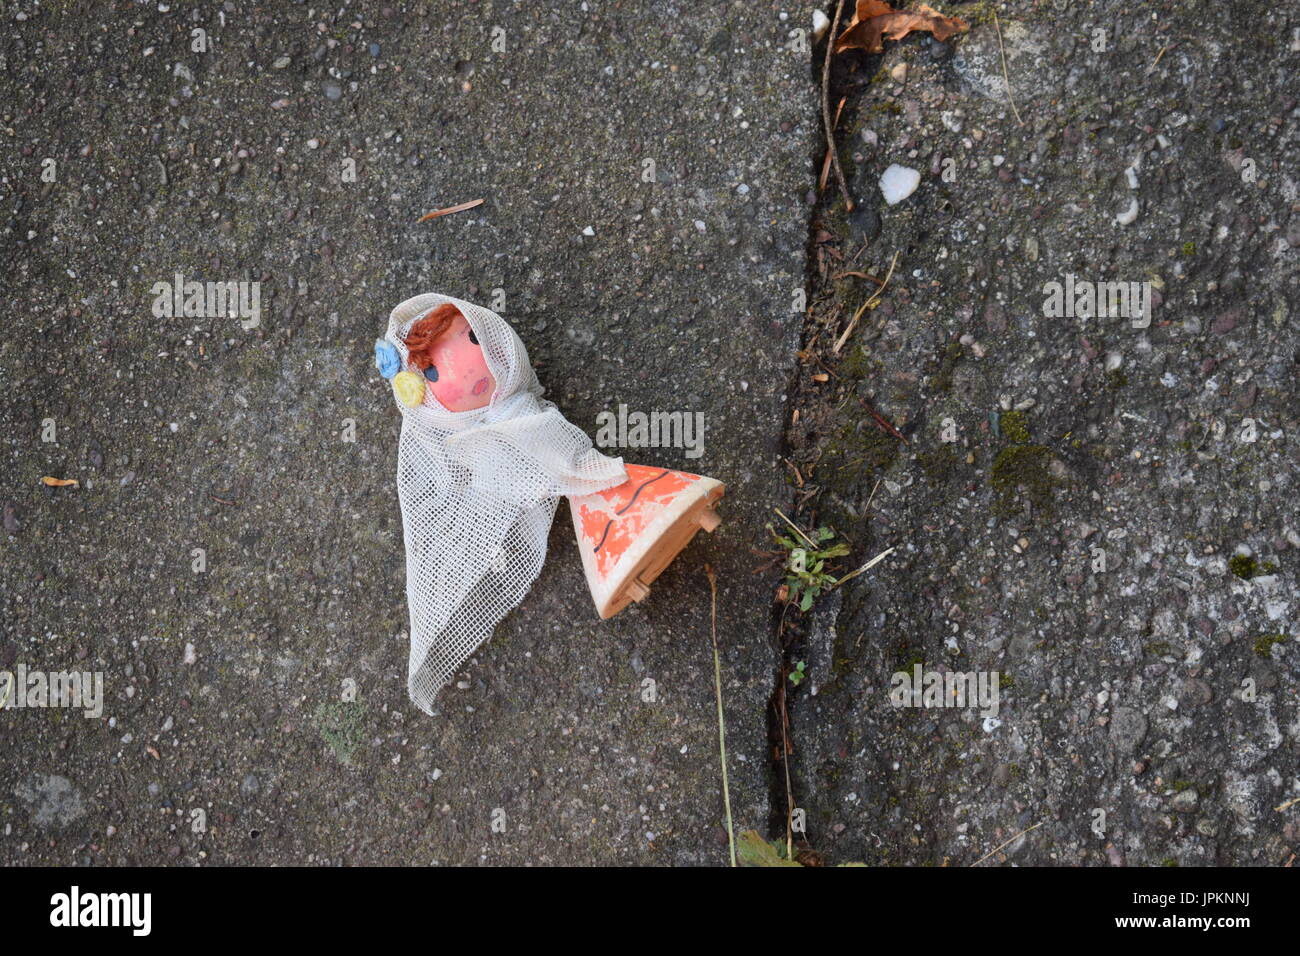 Old doll thrown away - Stock Image